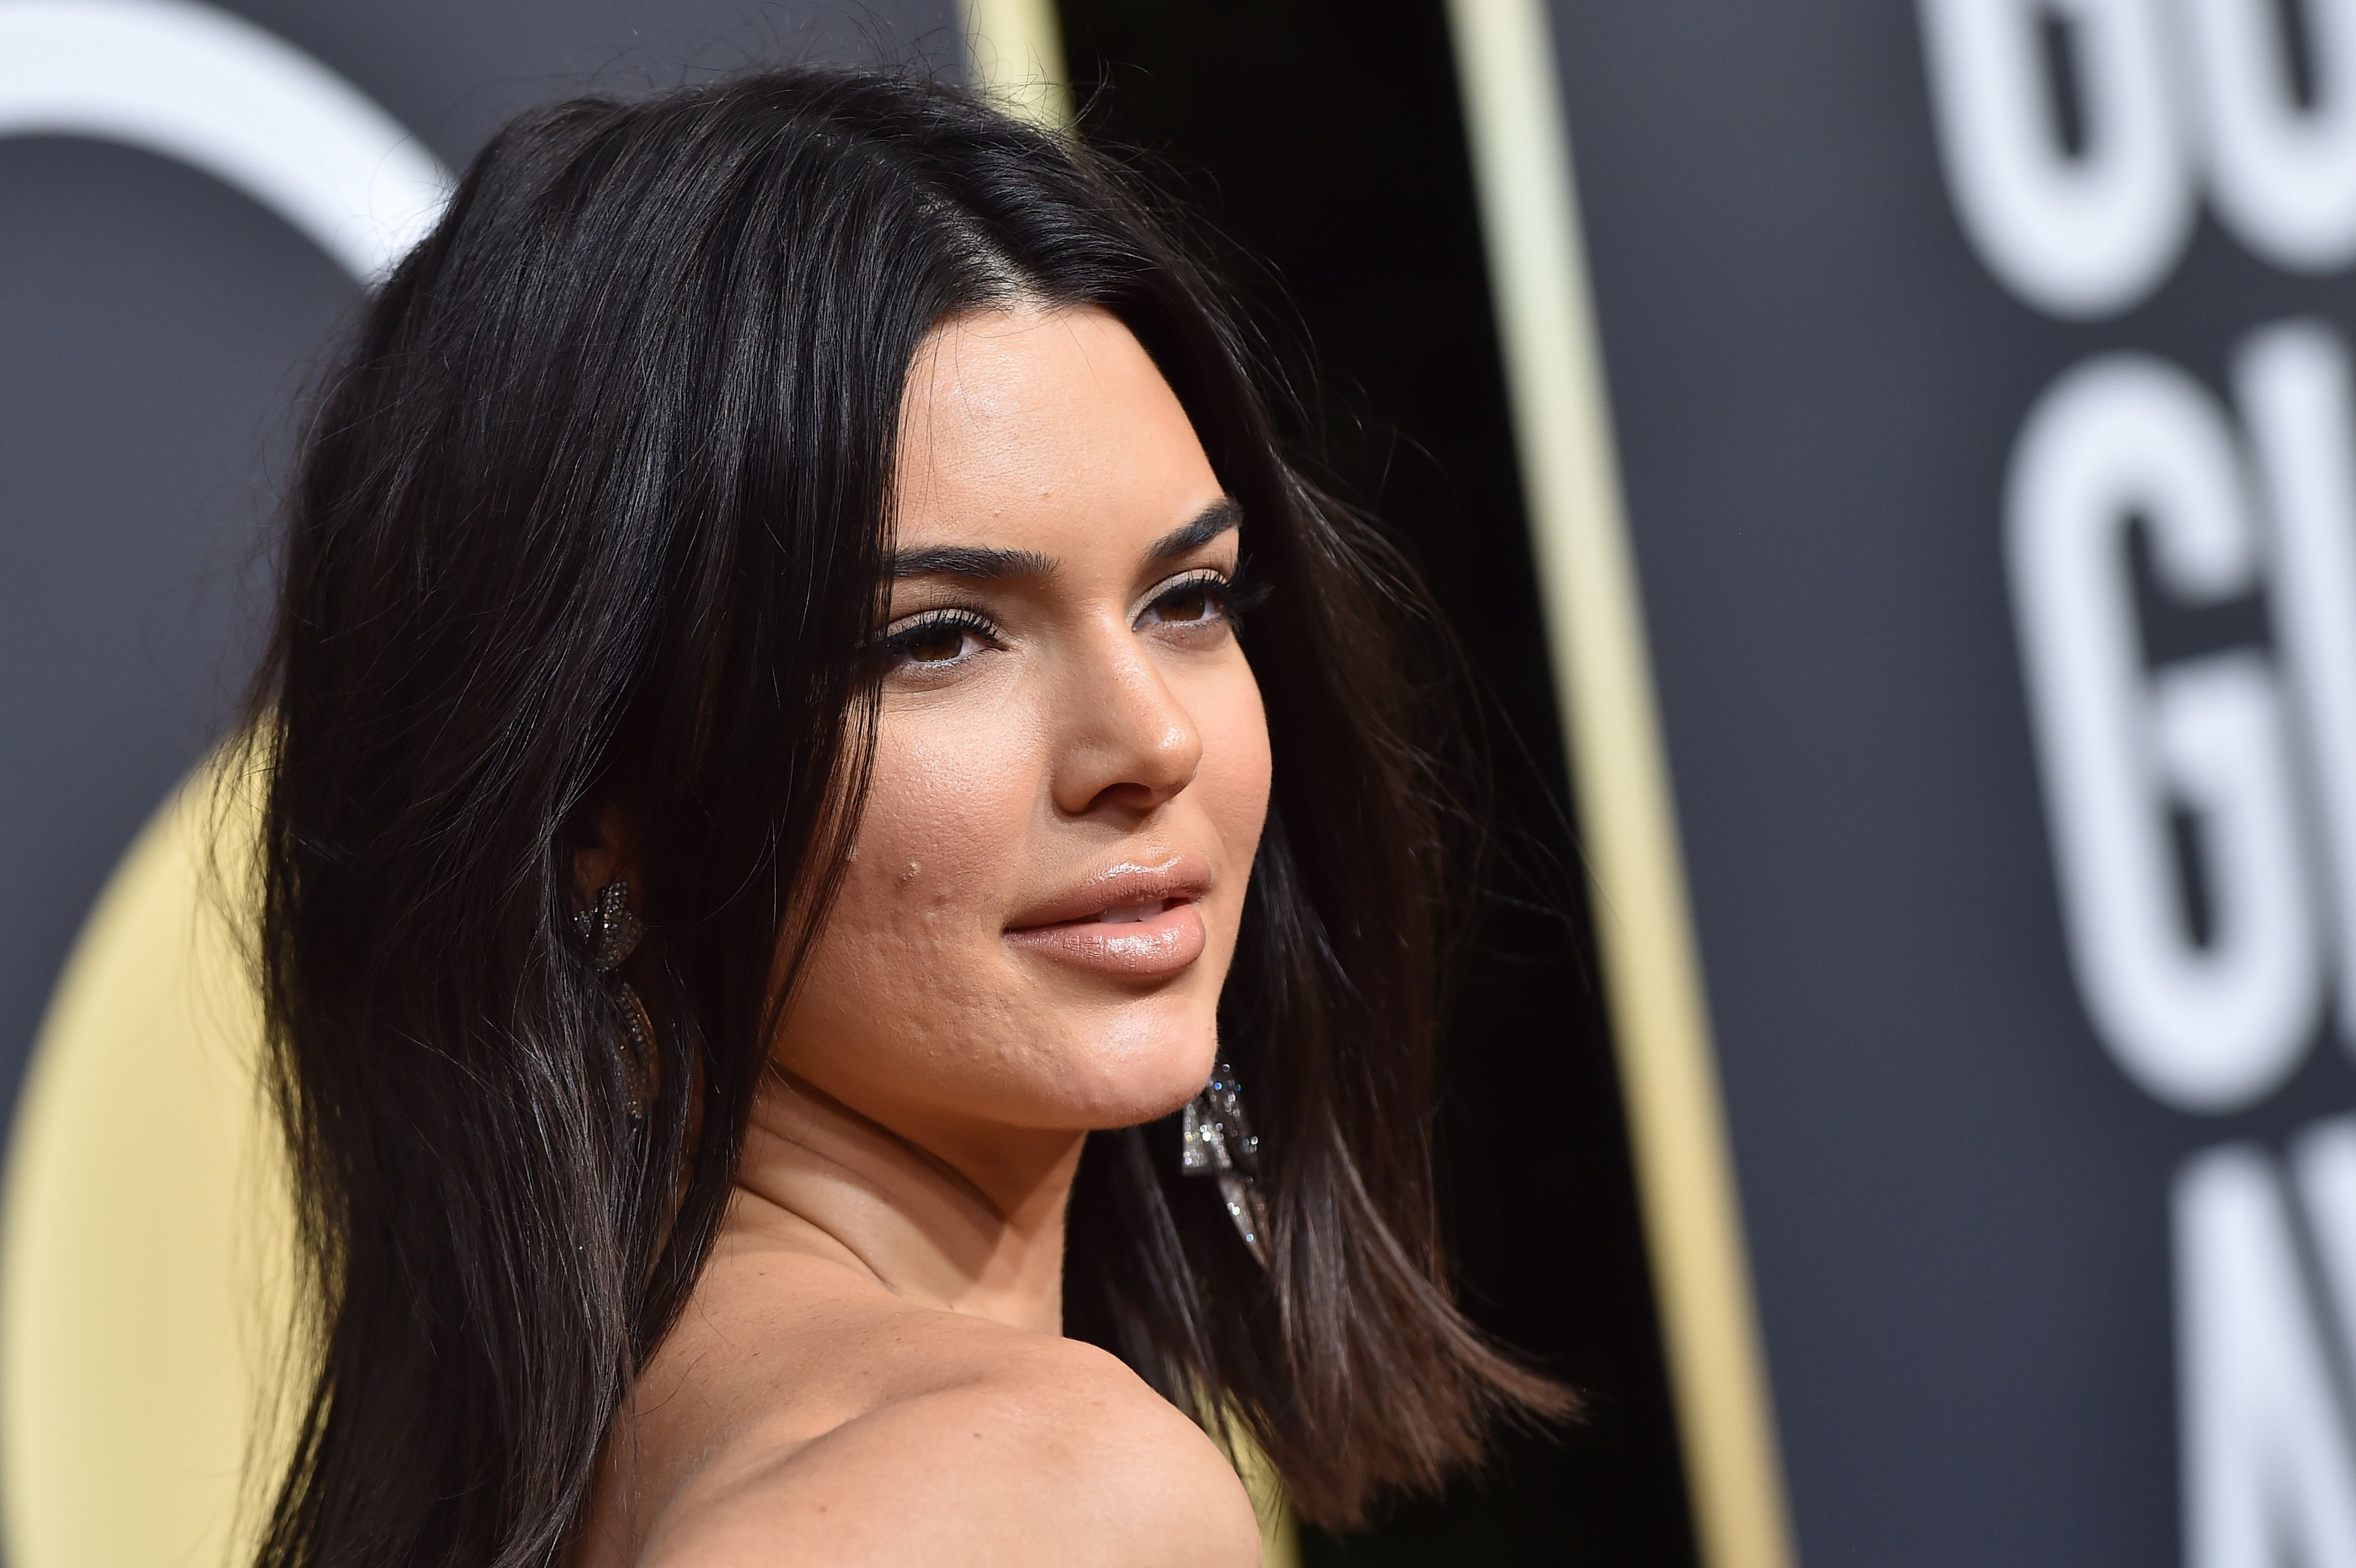 Image result for kendall jenner acne